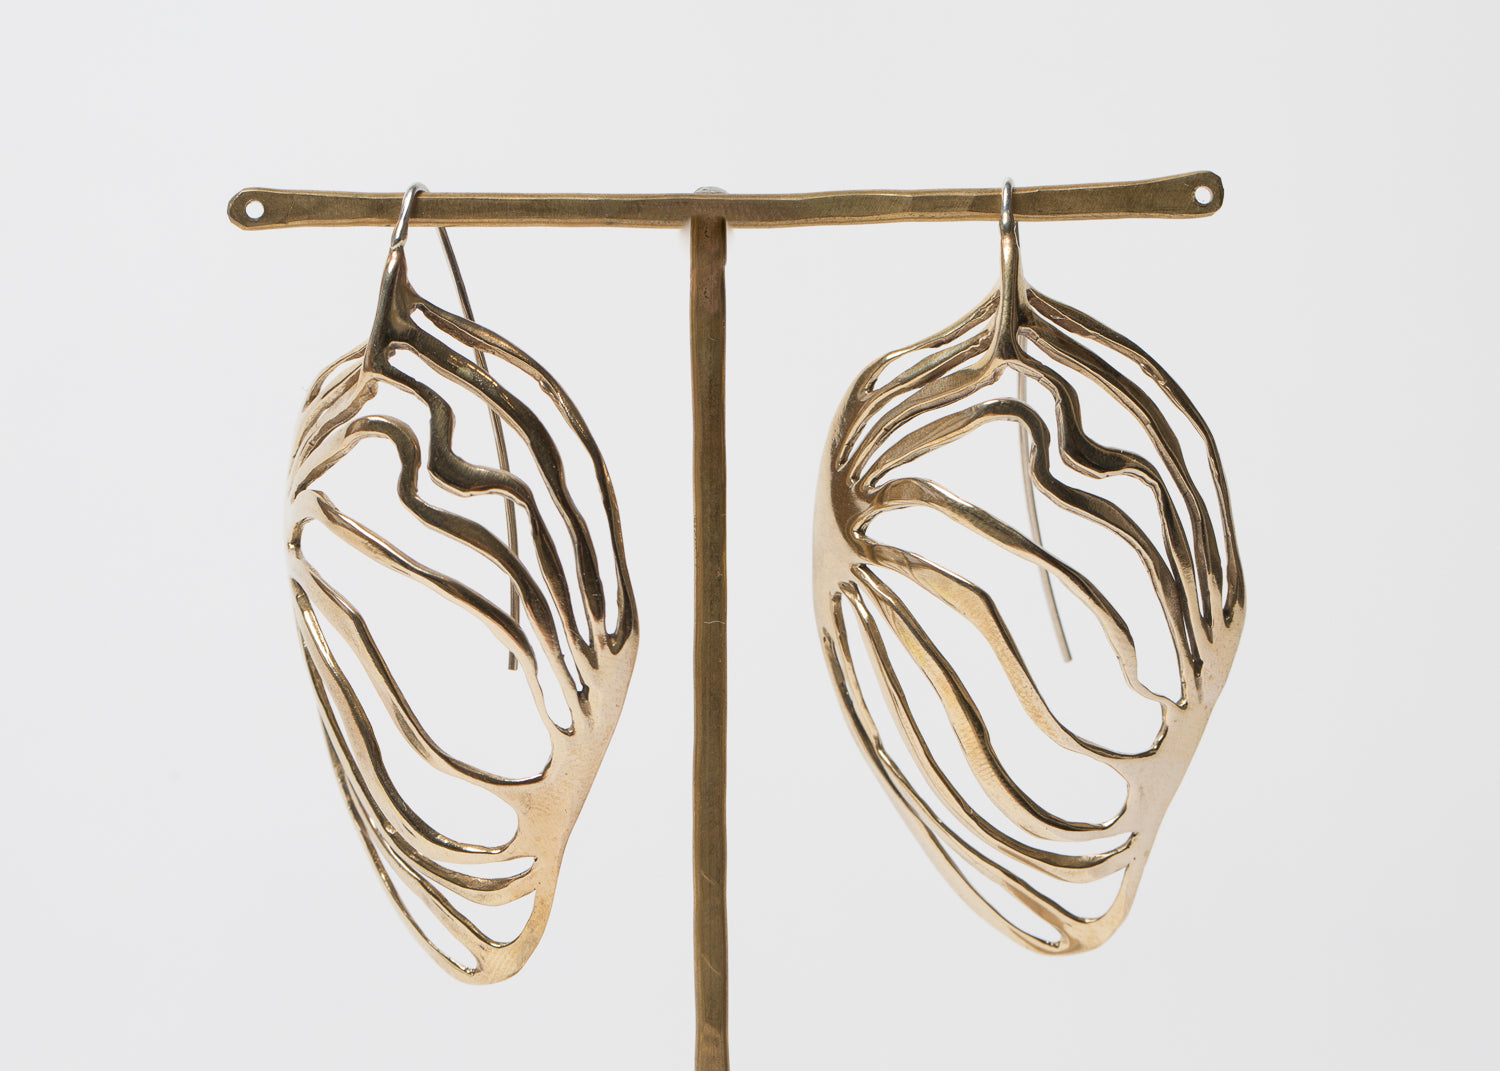 Ariana Boussard Reifel Monarch Earrings